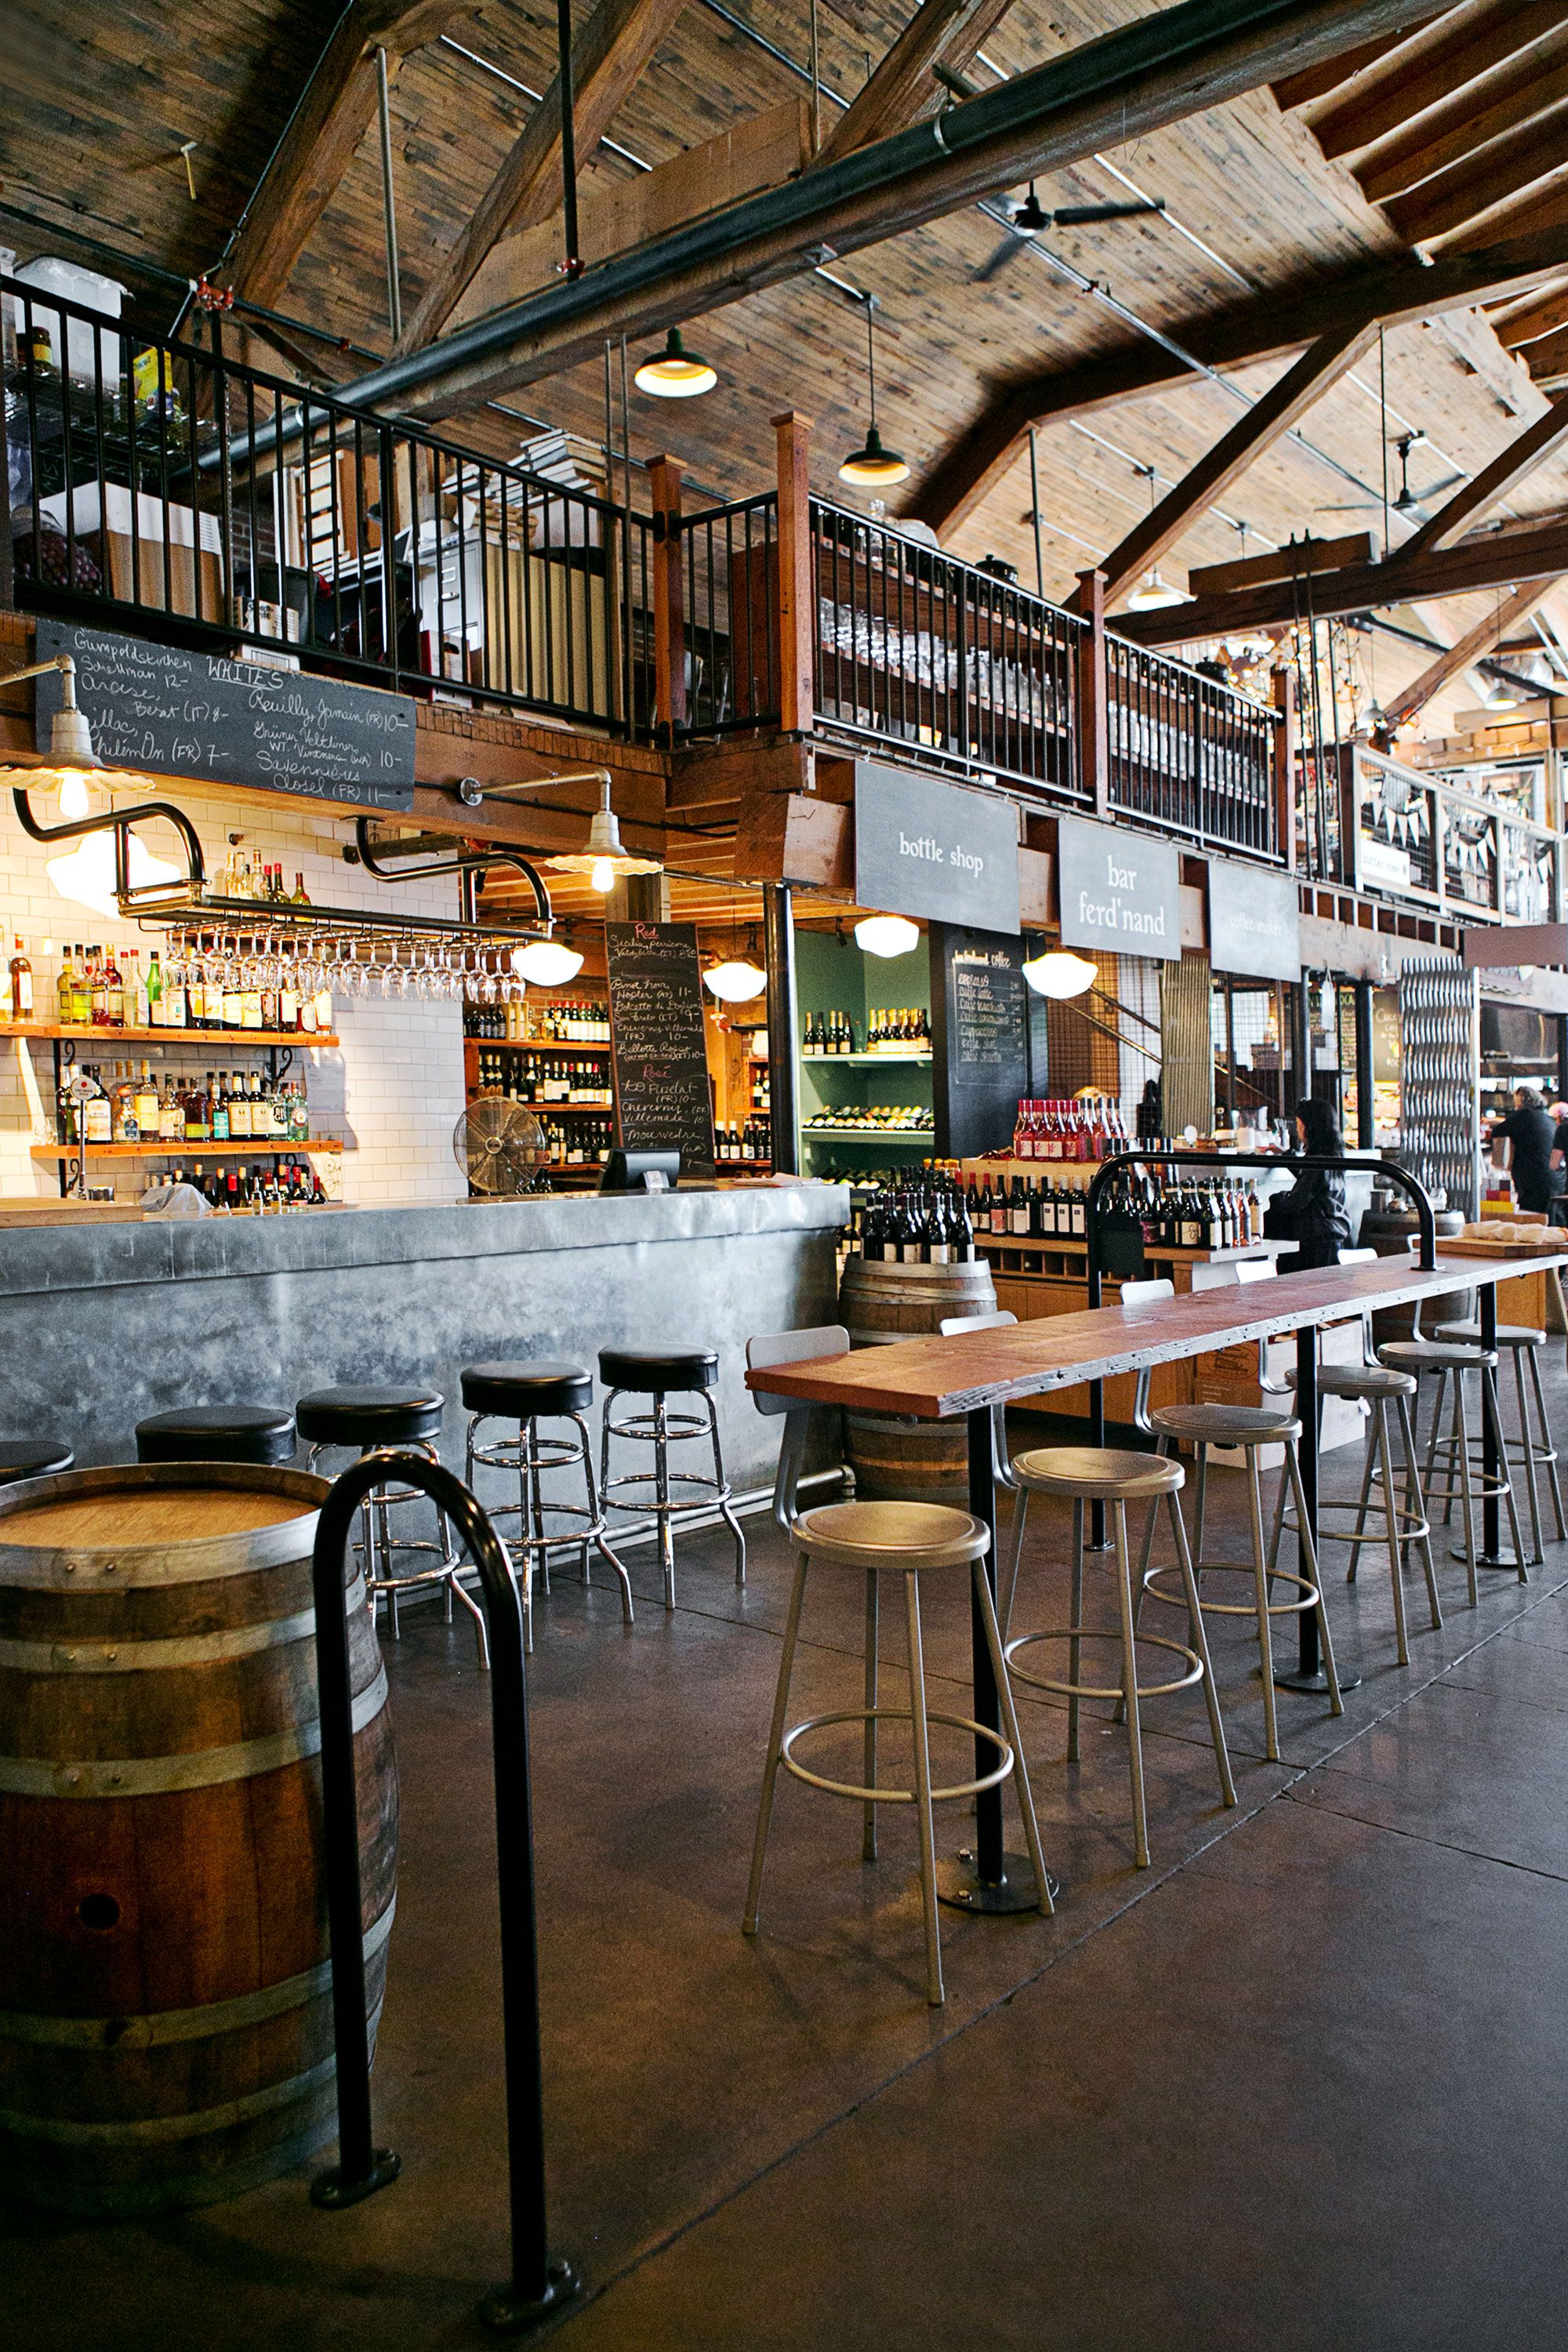 medium resolution of some of the best farm to table fare can be found at melrose market with indie food purveyors a restaurant and the rustic chic bar ferd nand